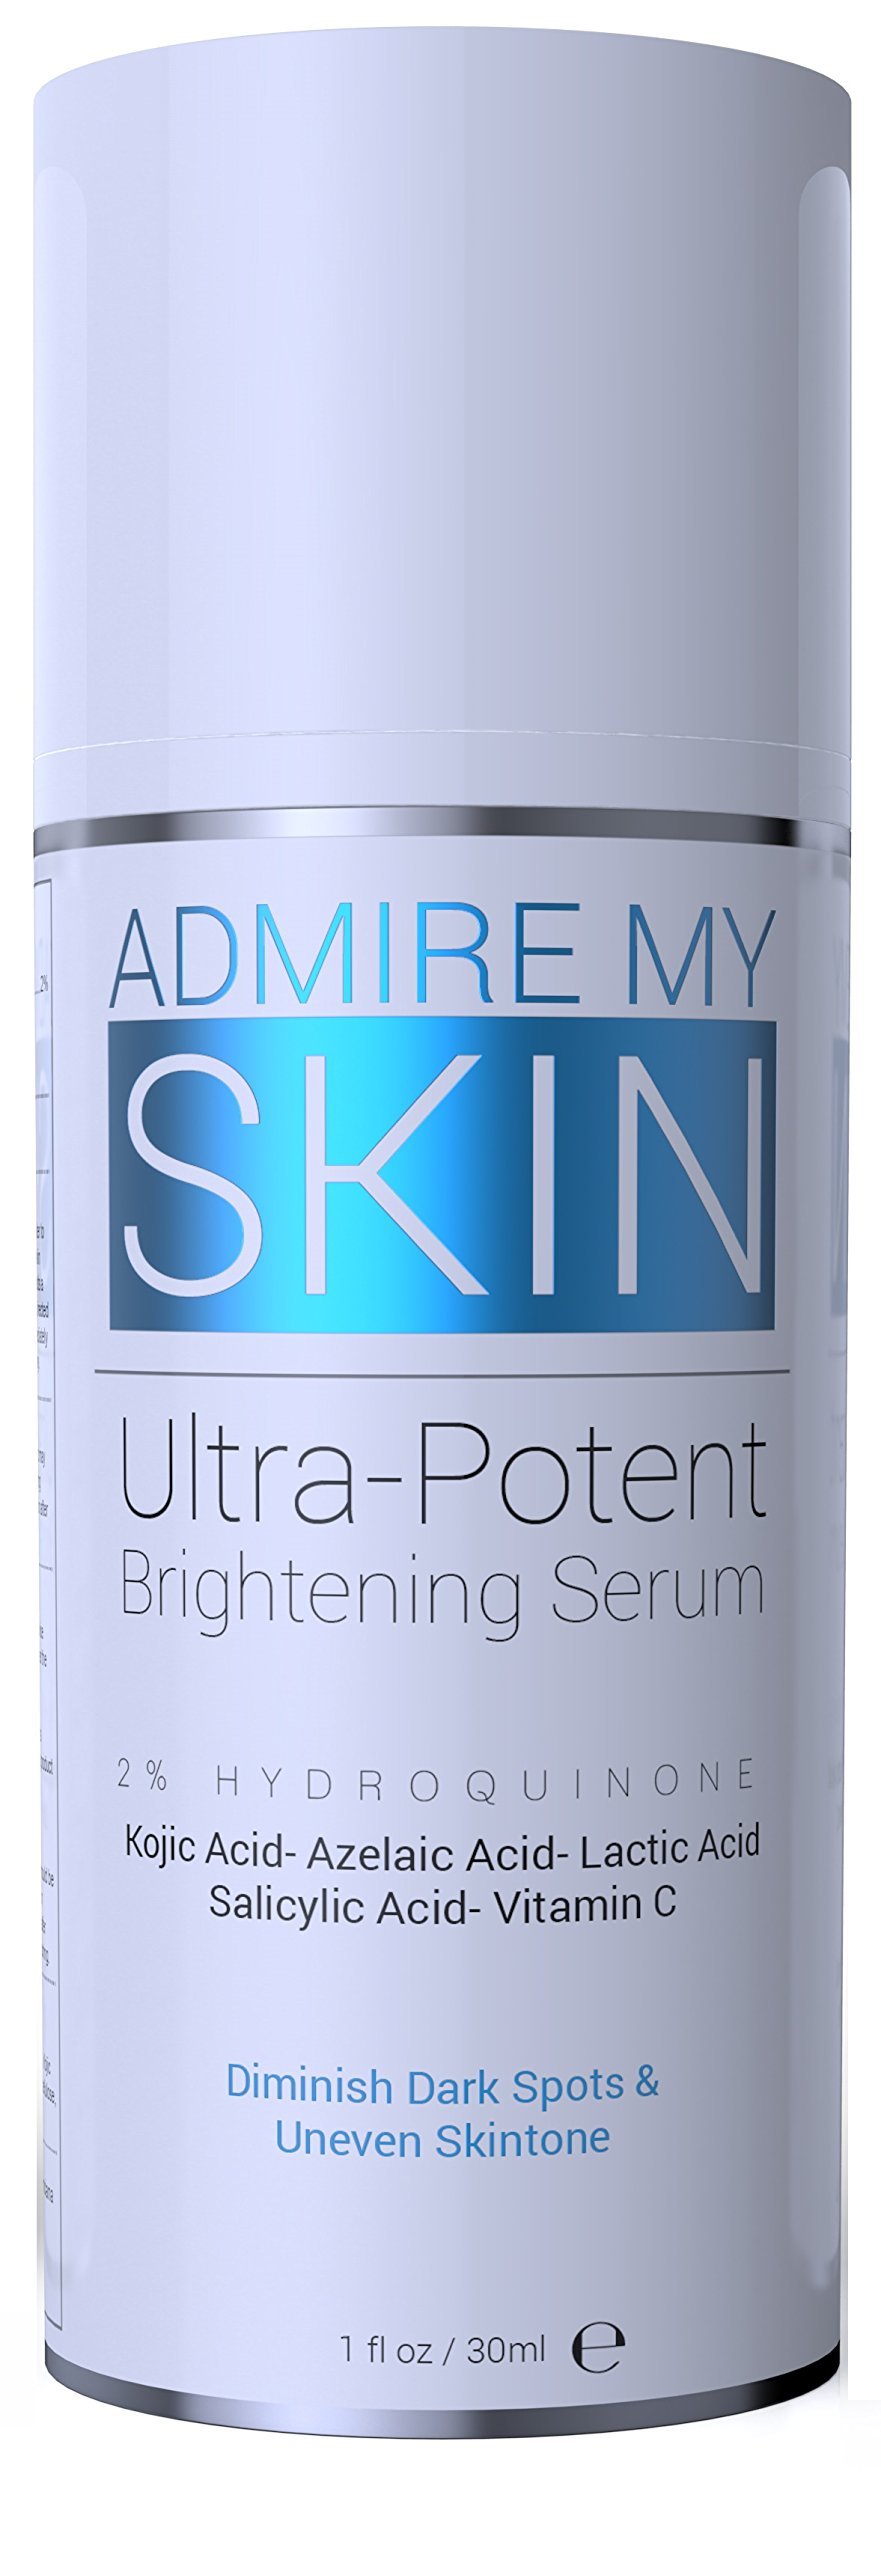 2% Hydroquinone Dark Spot Corrector Remover For Face & Melasma Treatment Fade Cream - Contains Vitamin C, Salicylic Acid, Kojic Acid, Azelaic Acid, Lactic Acid Peel (1oz) by Admire My Skin